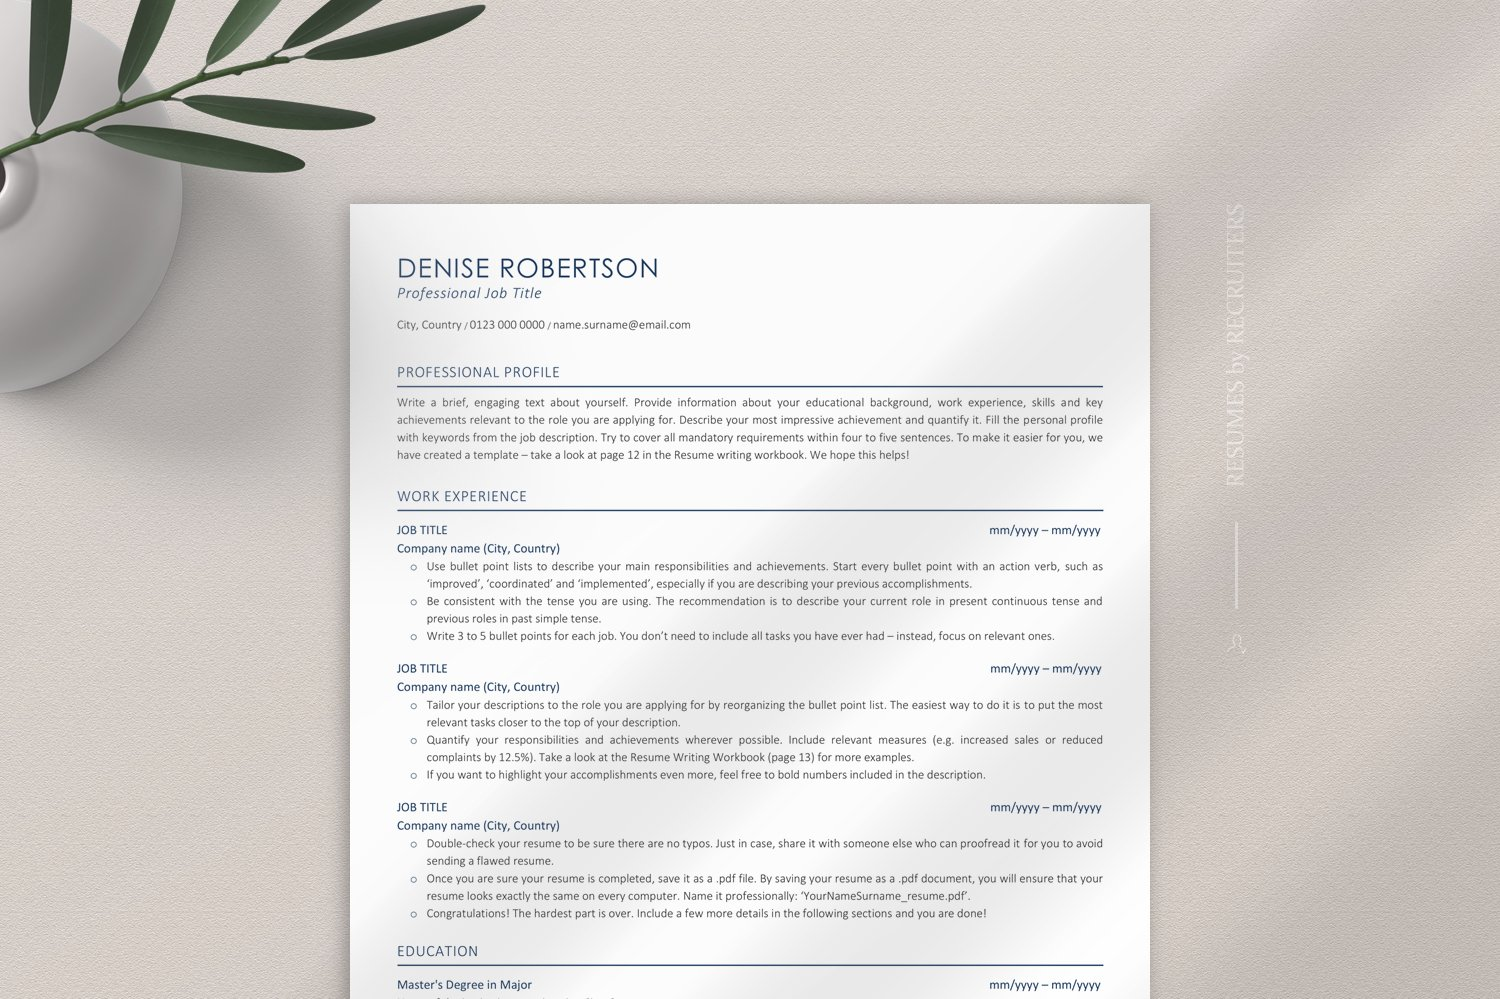 Ats Friendly Resume Template Ats Optimized Executive Cv 537691 Resume Templates Design Bundles